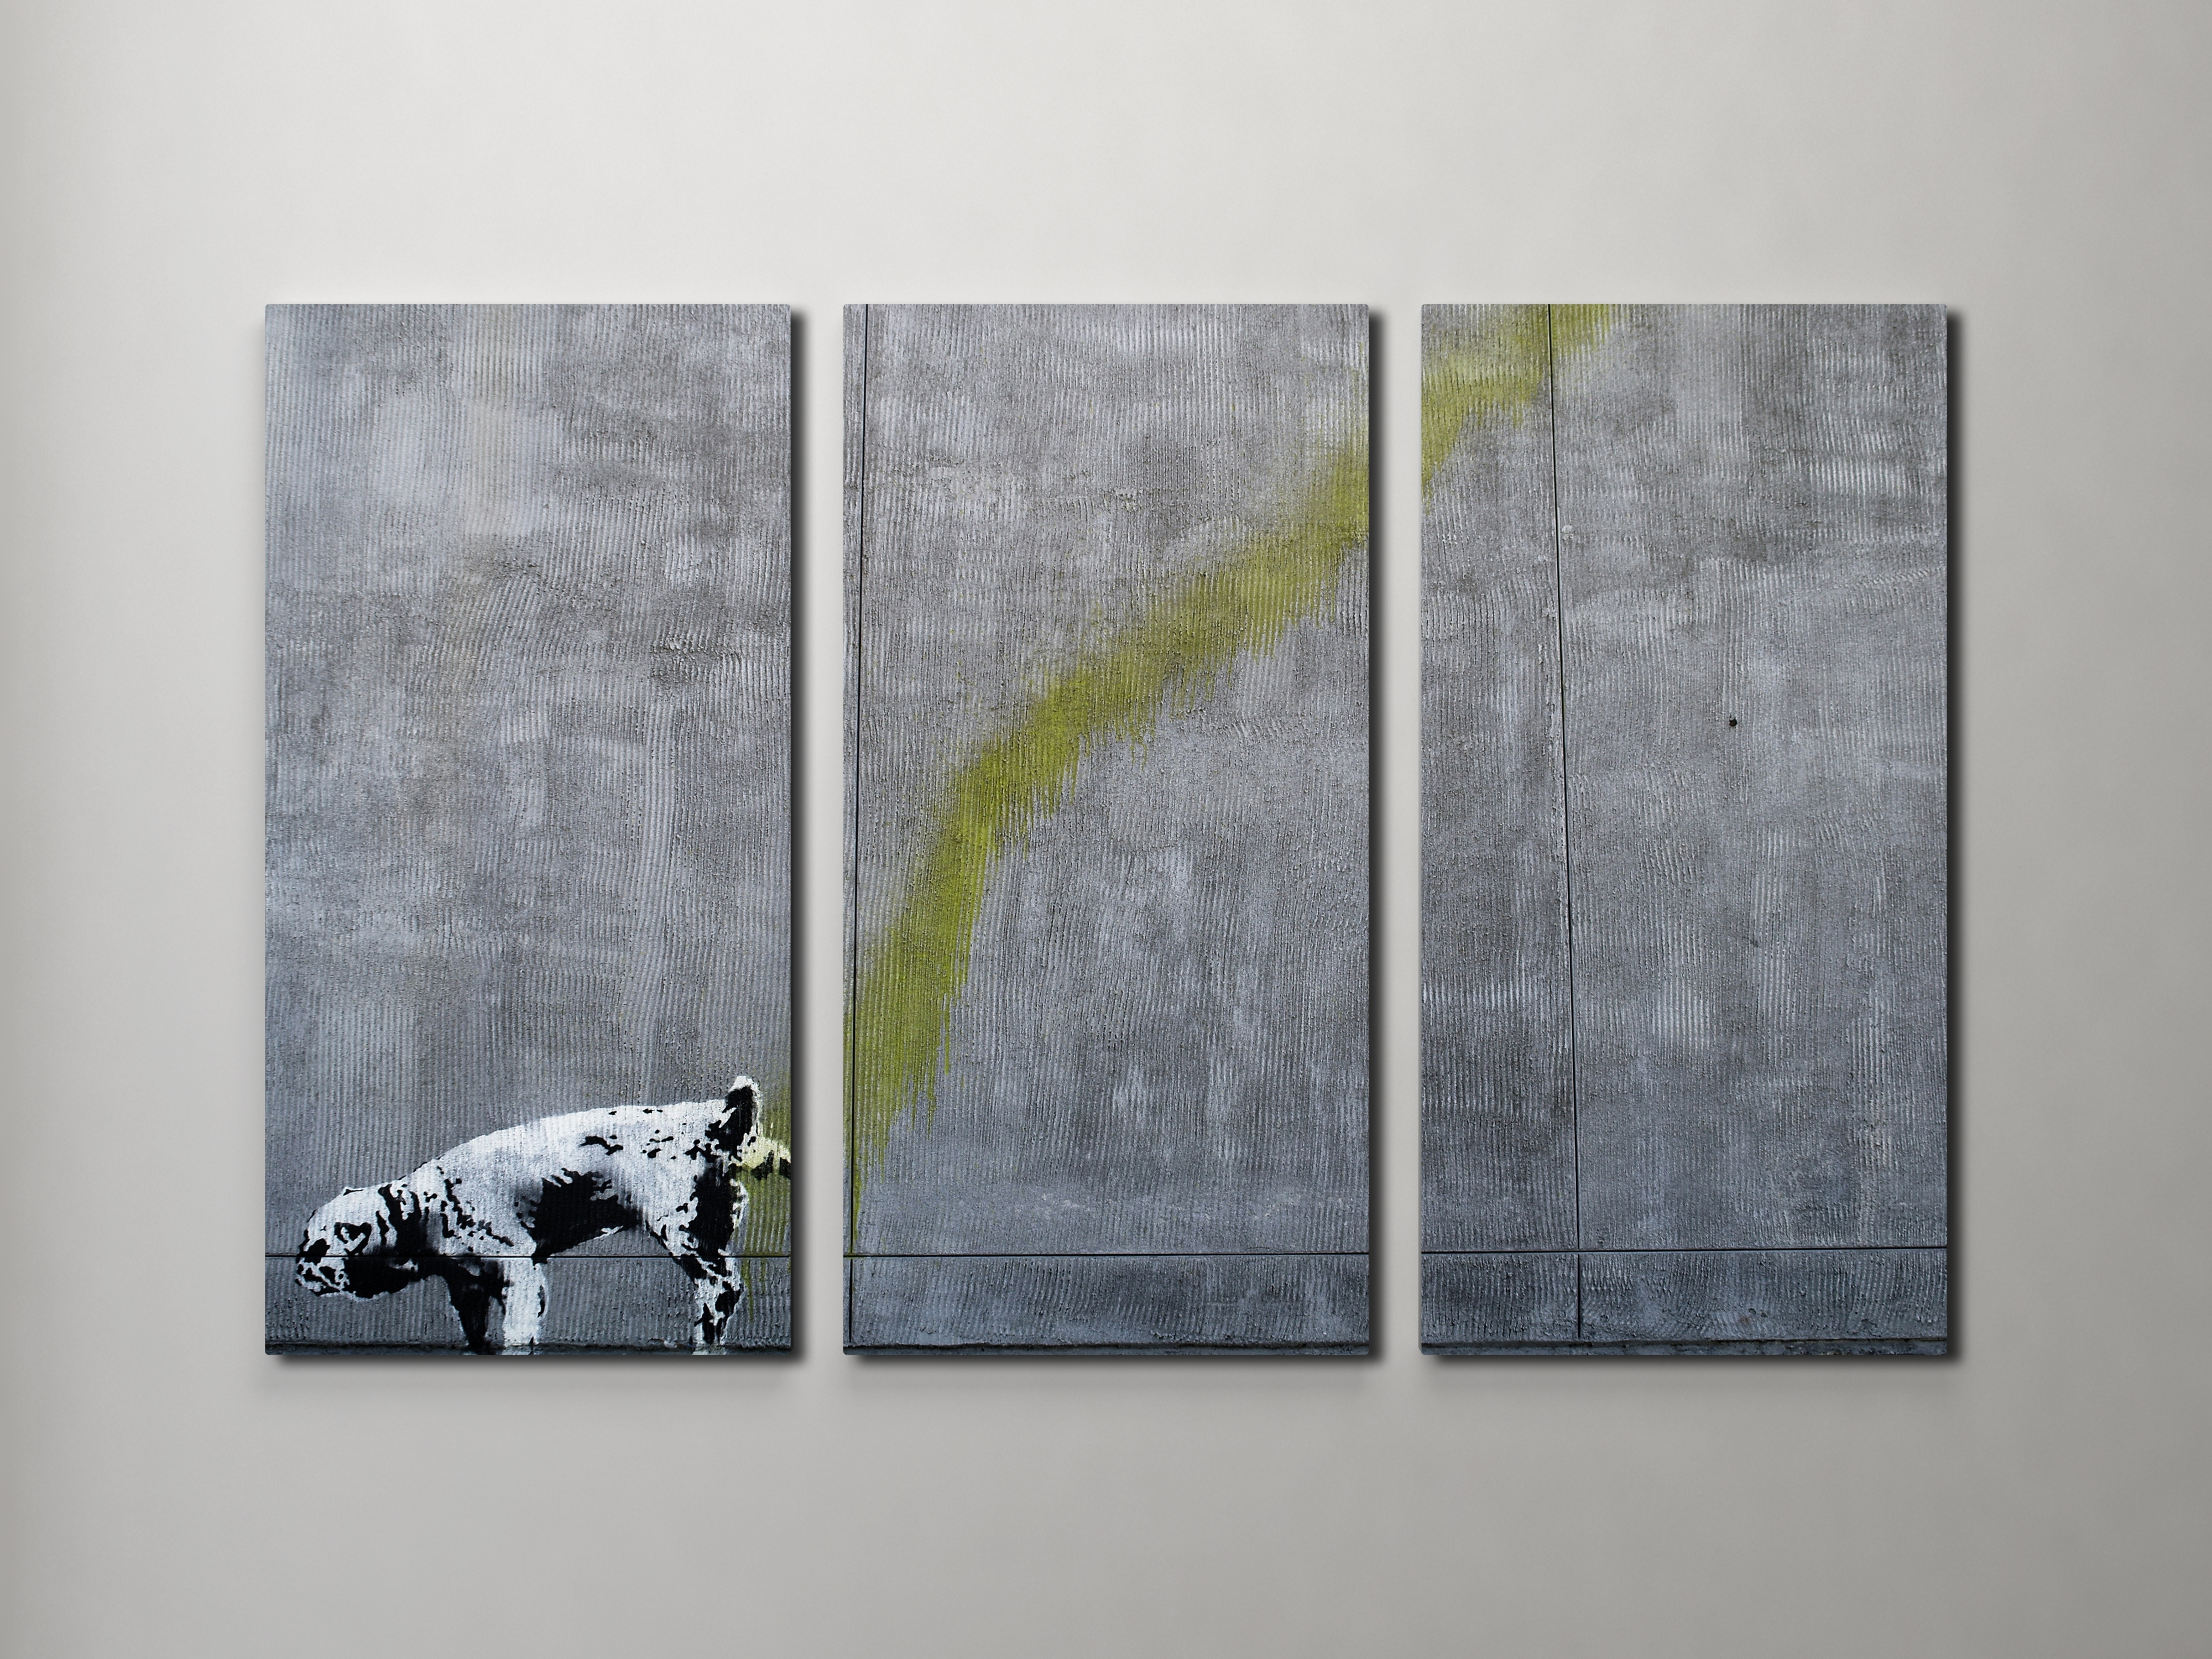 Most Recently Released Triptych Wall Art with regard to Banksy Pissing Dog Triptych Canvas Wall Art